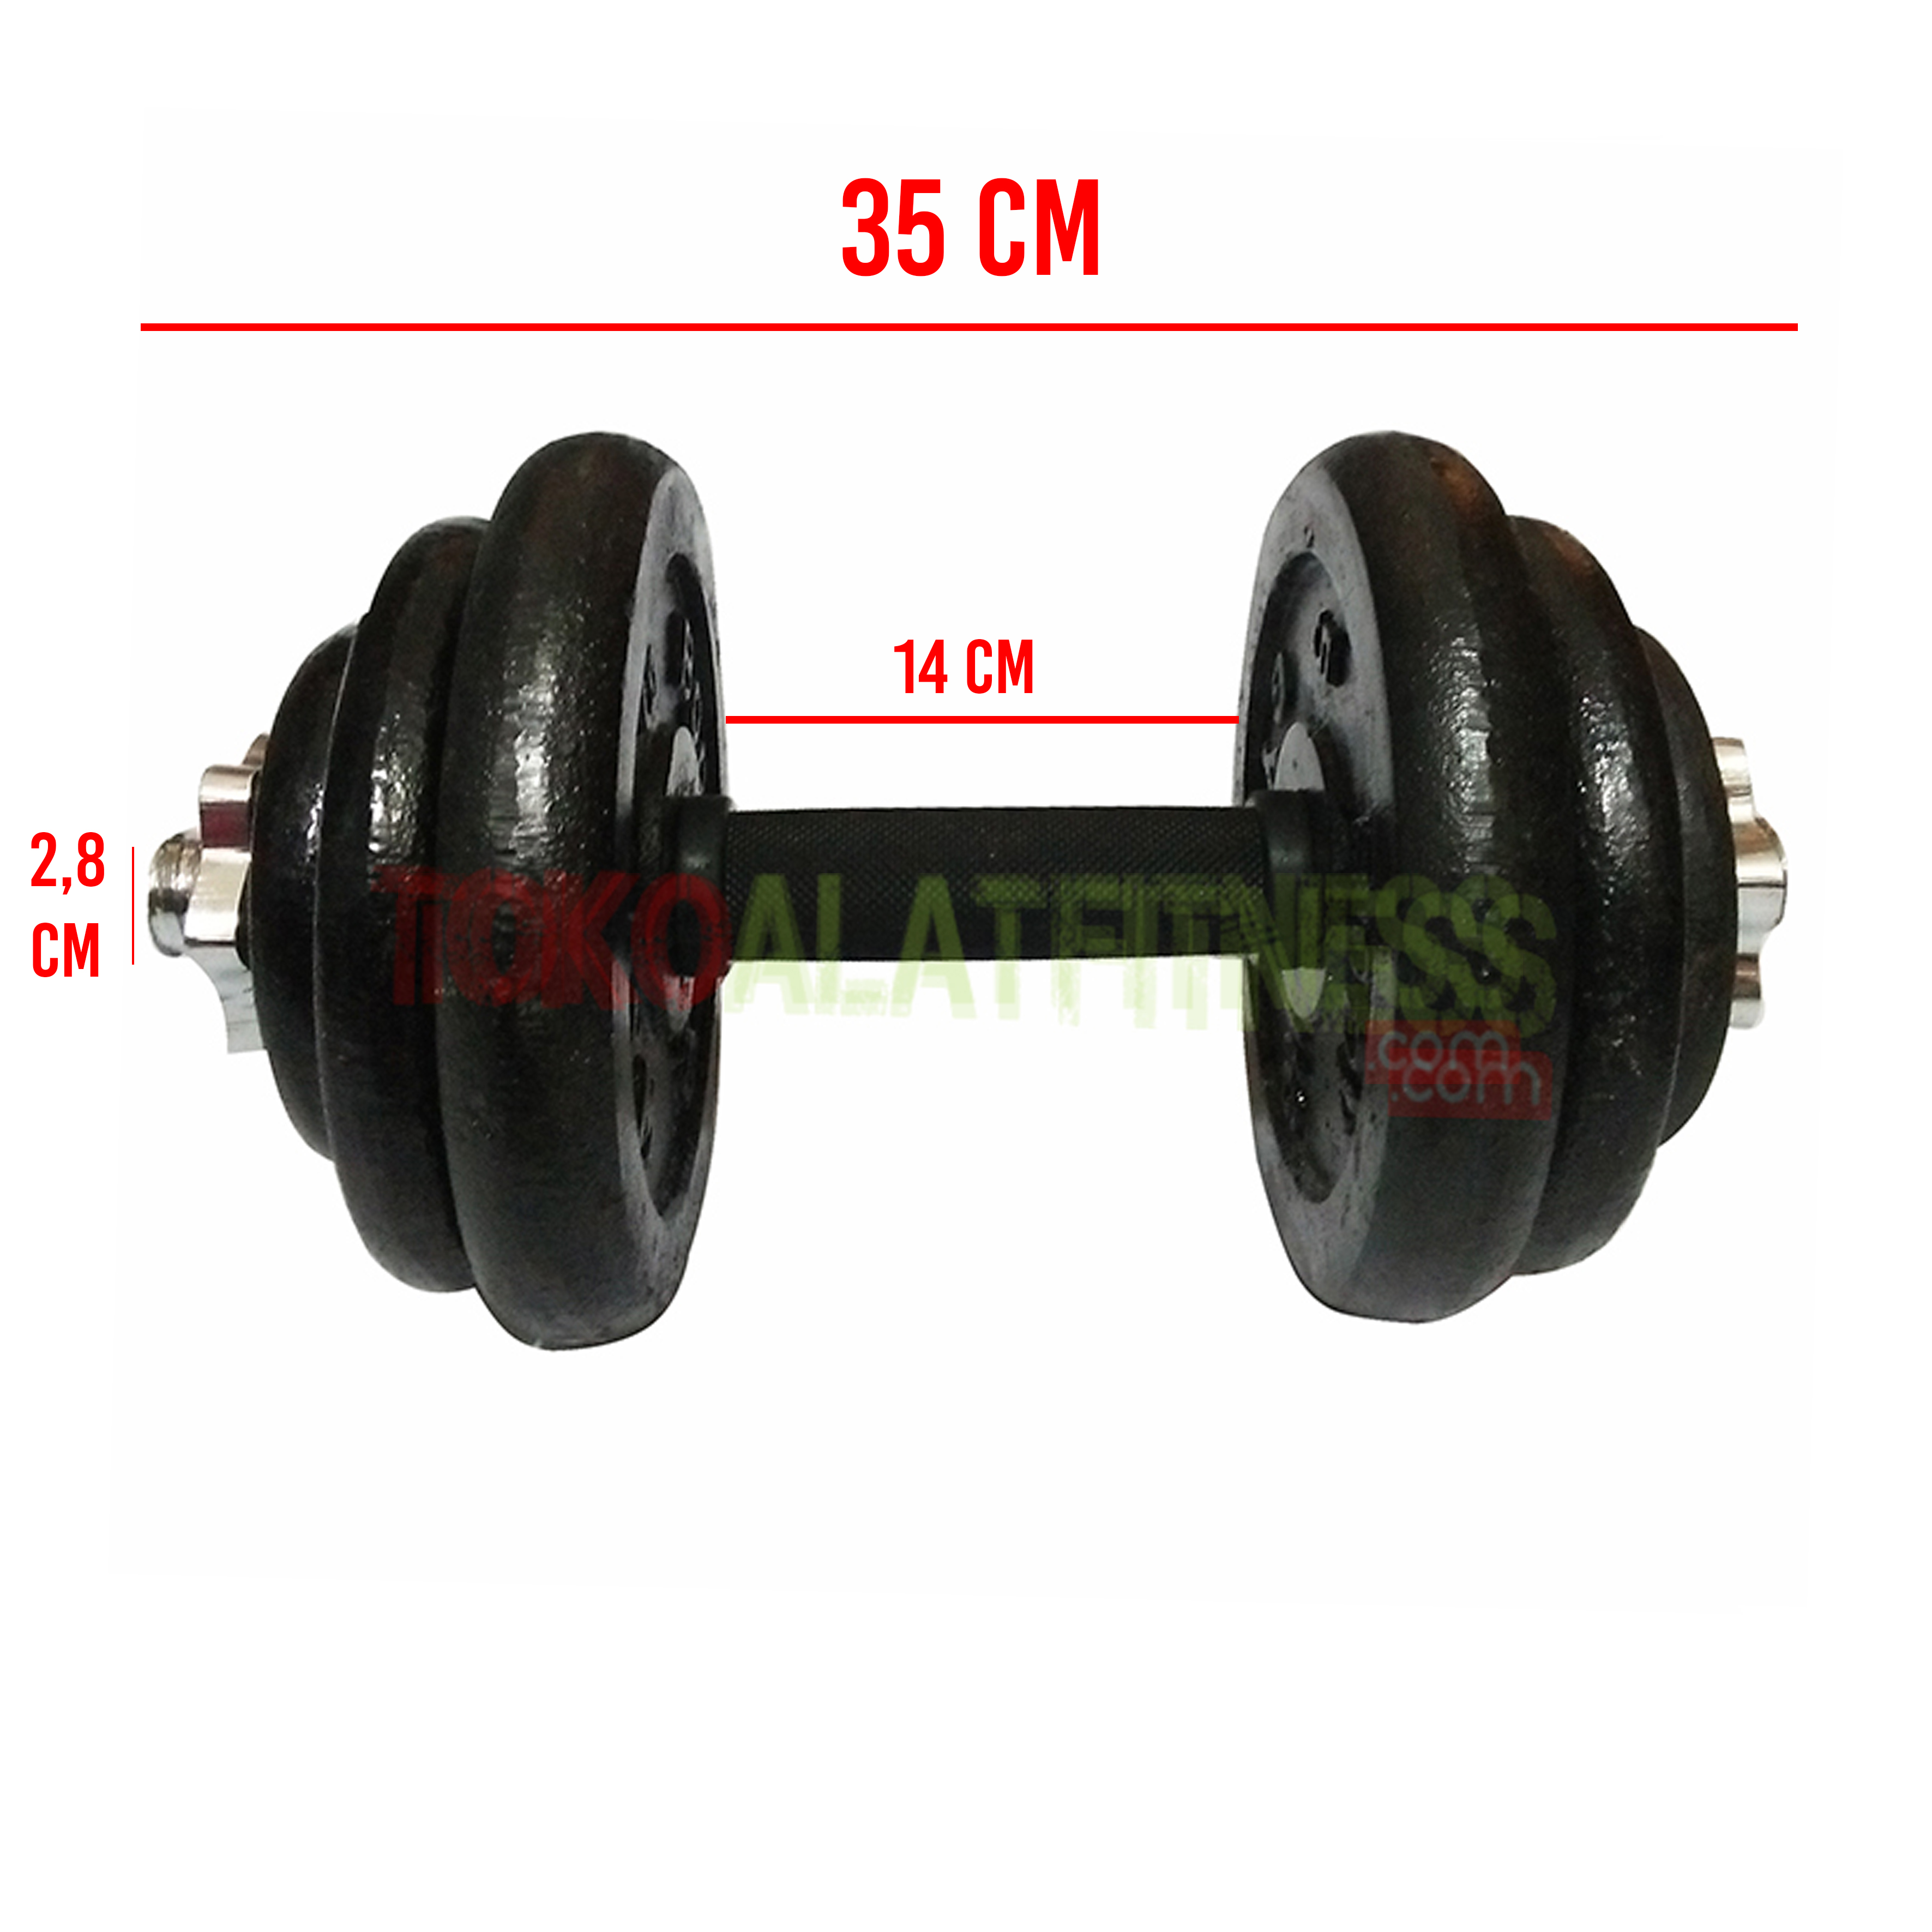 spesifikasi dumbell 1 20 kg - Adjustable Dumbell Set Iron 20 kg Body Gym